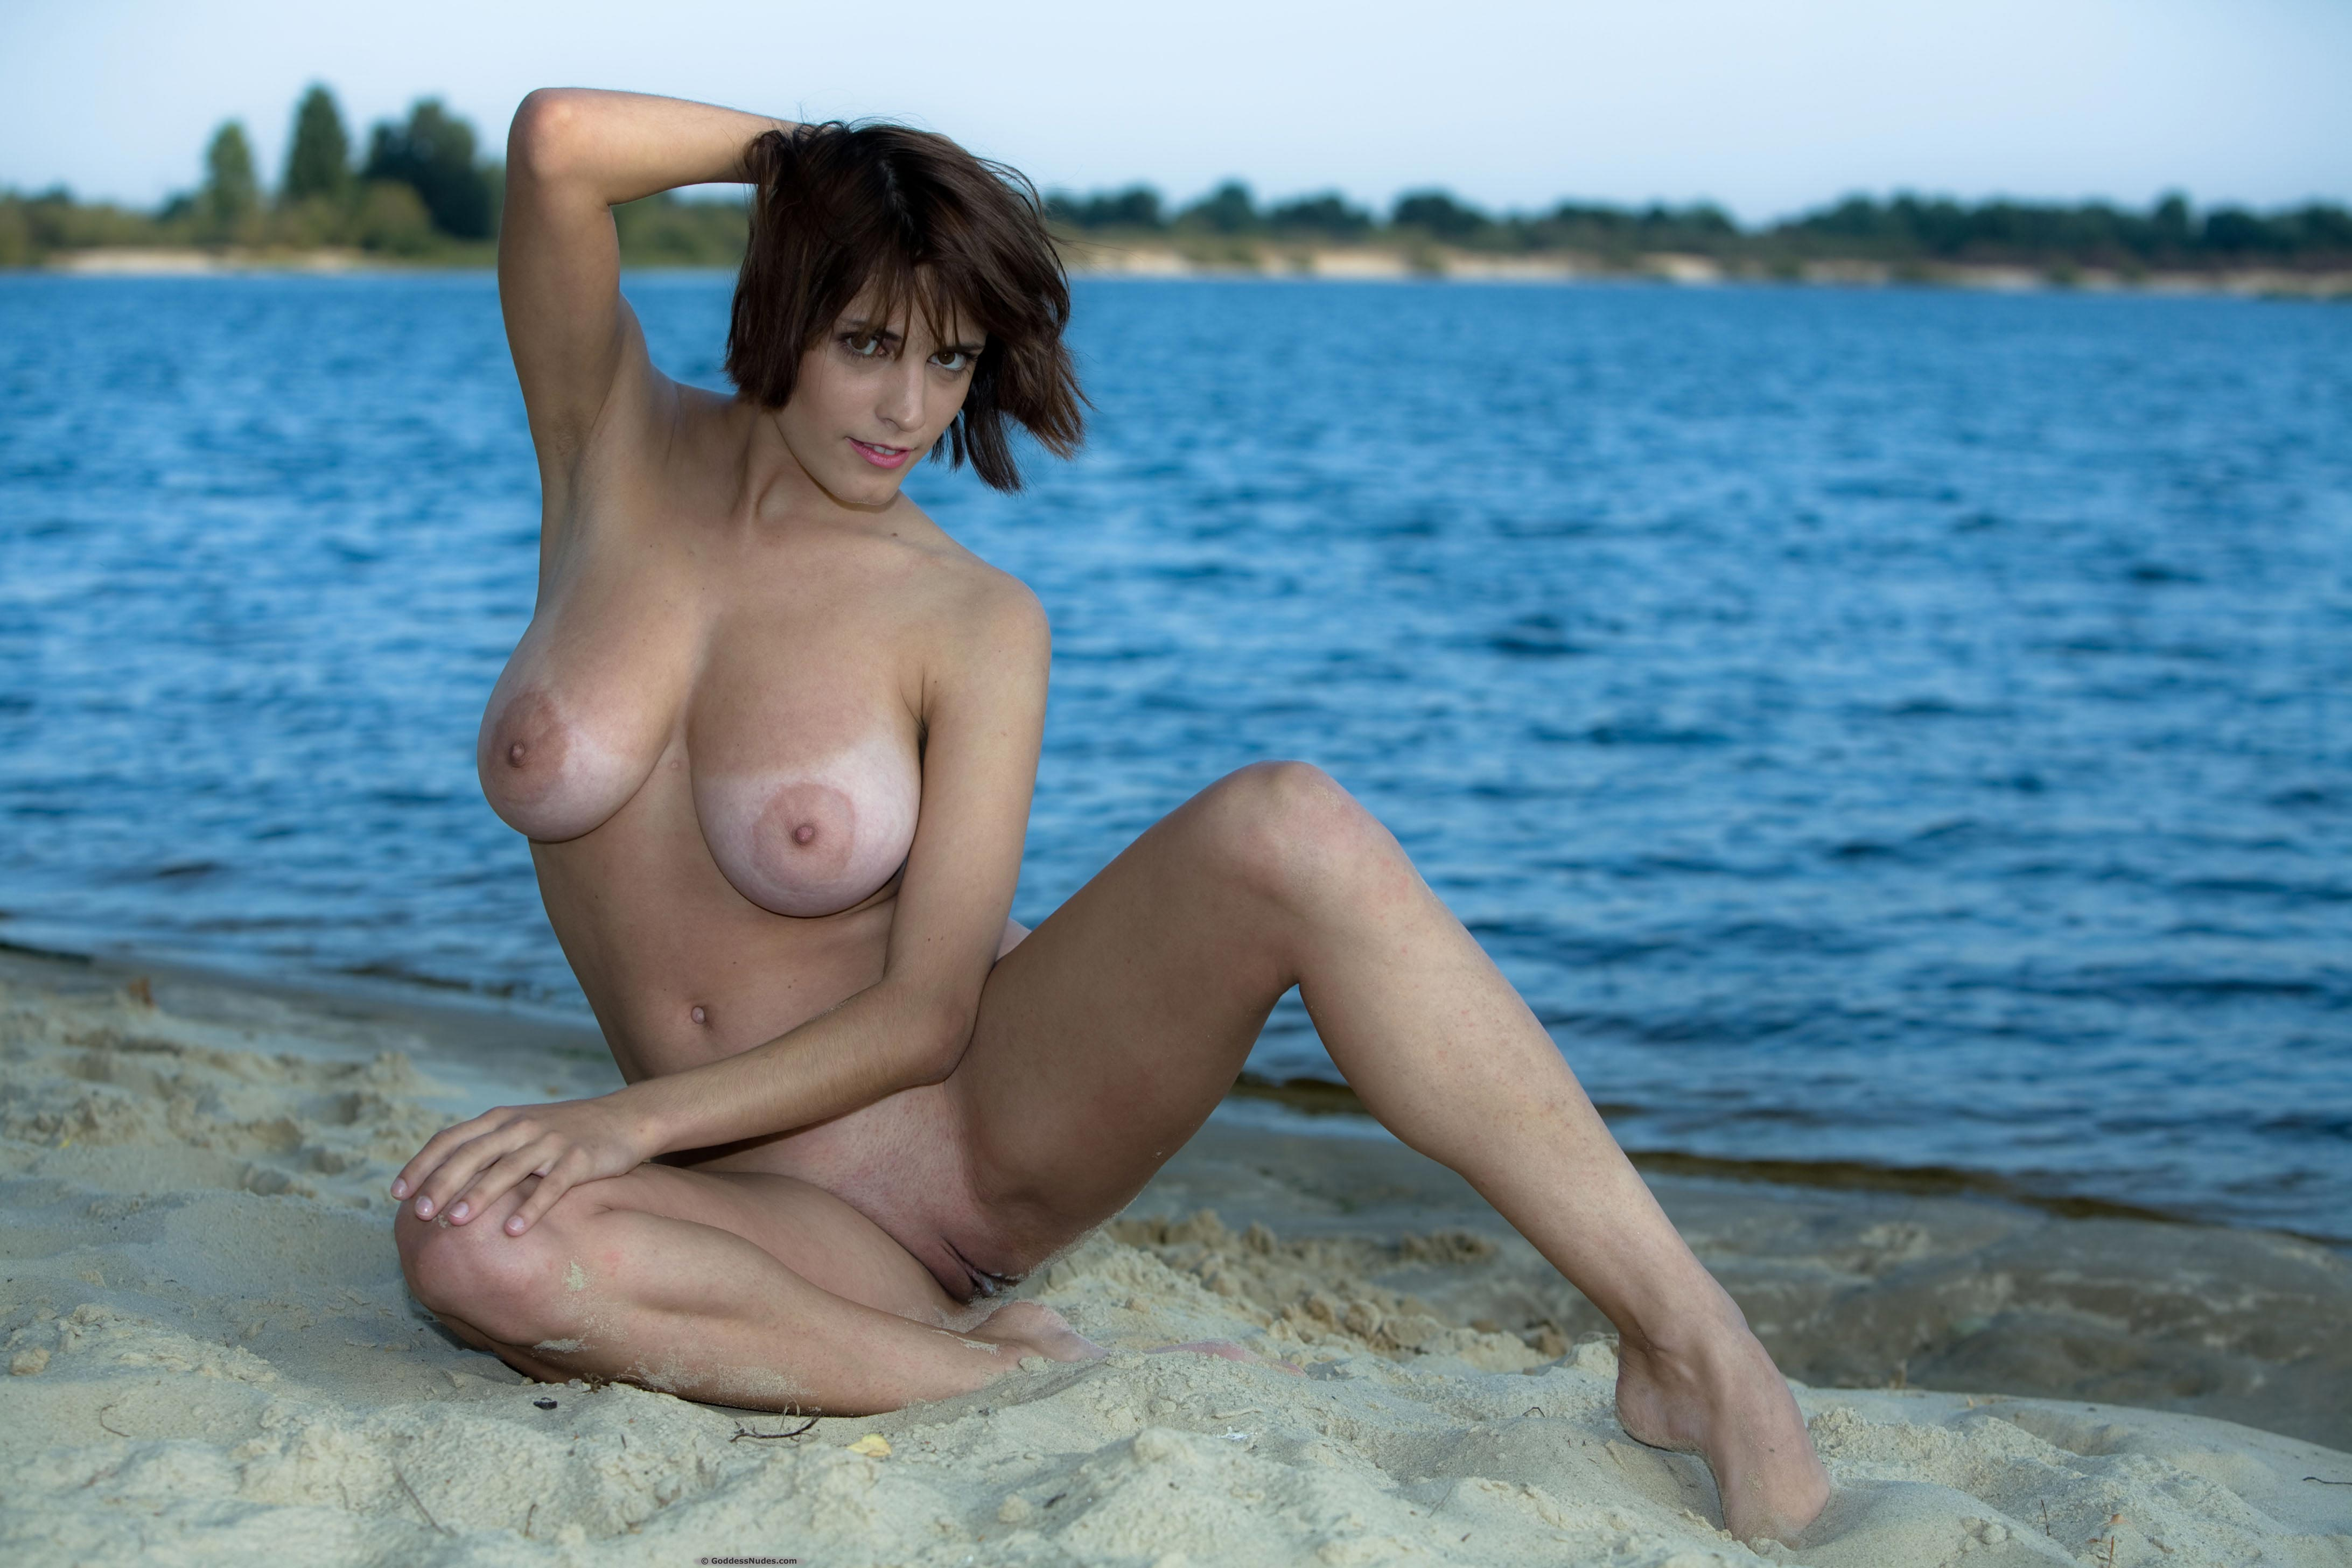 Nude Beach Video Download